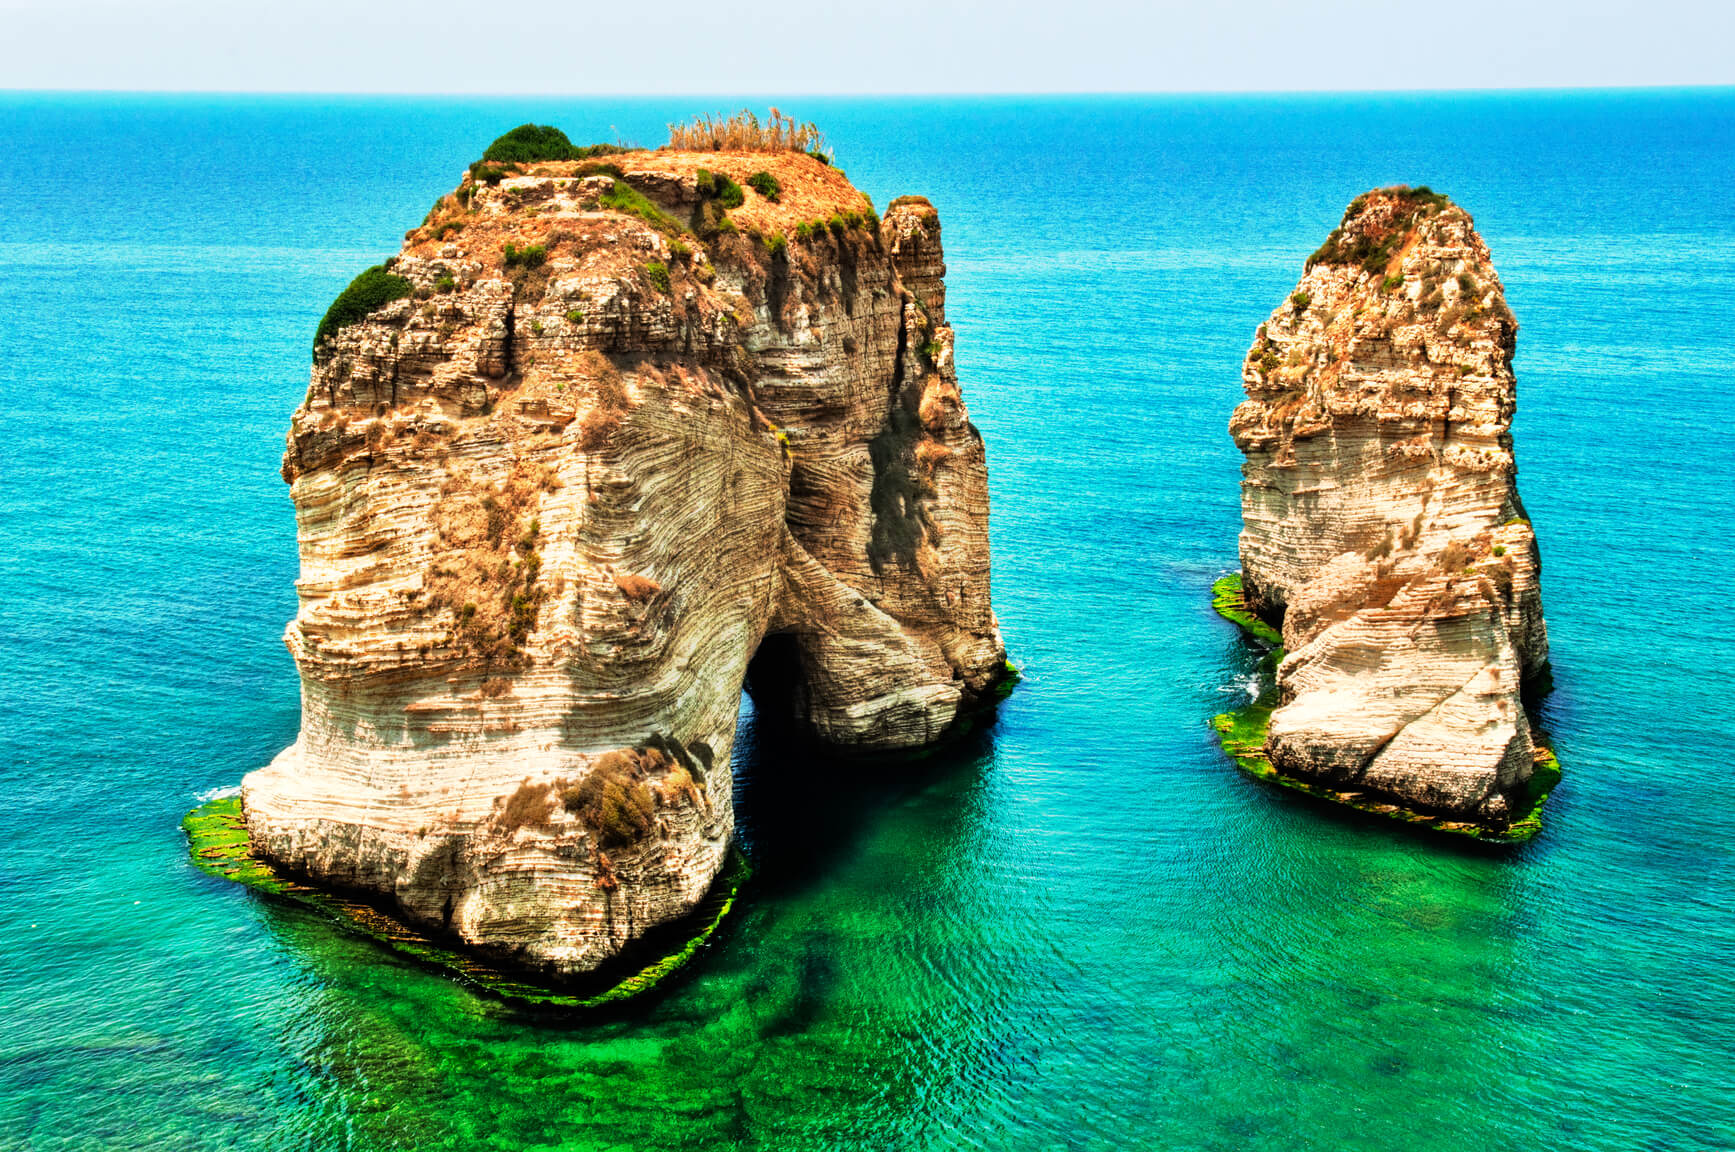 Denver, Colorado to Beirut, Lebanon for only $642 roundtrip